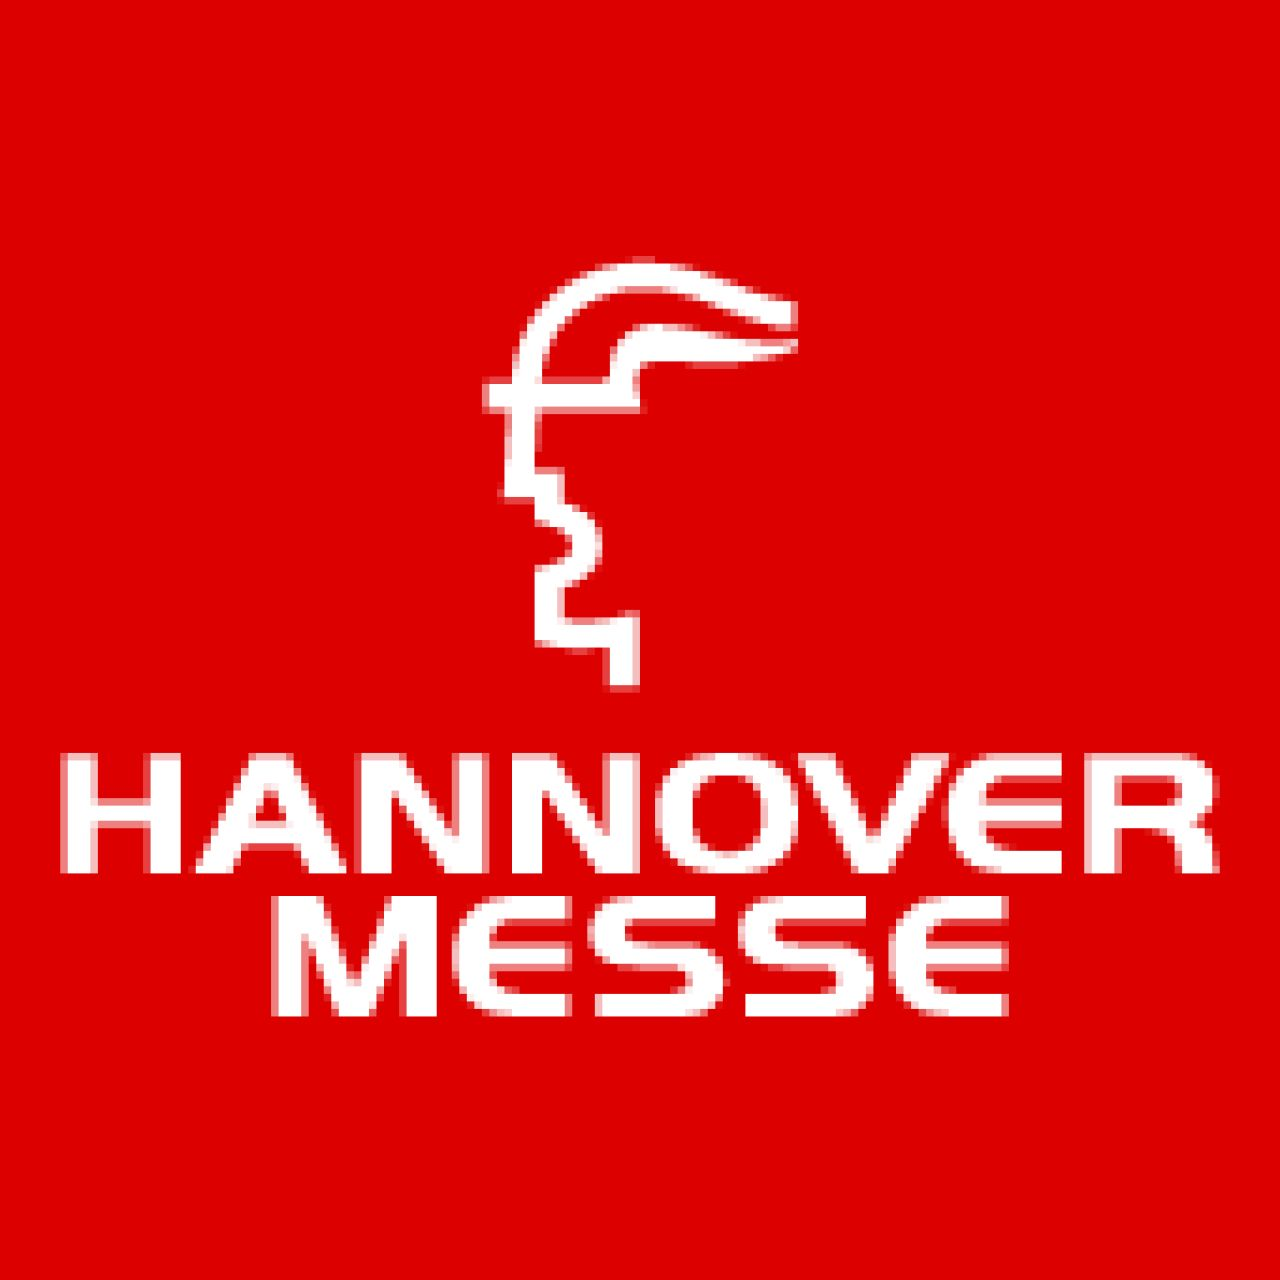 Hannover Messe: 12.04.-16.04.2021